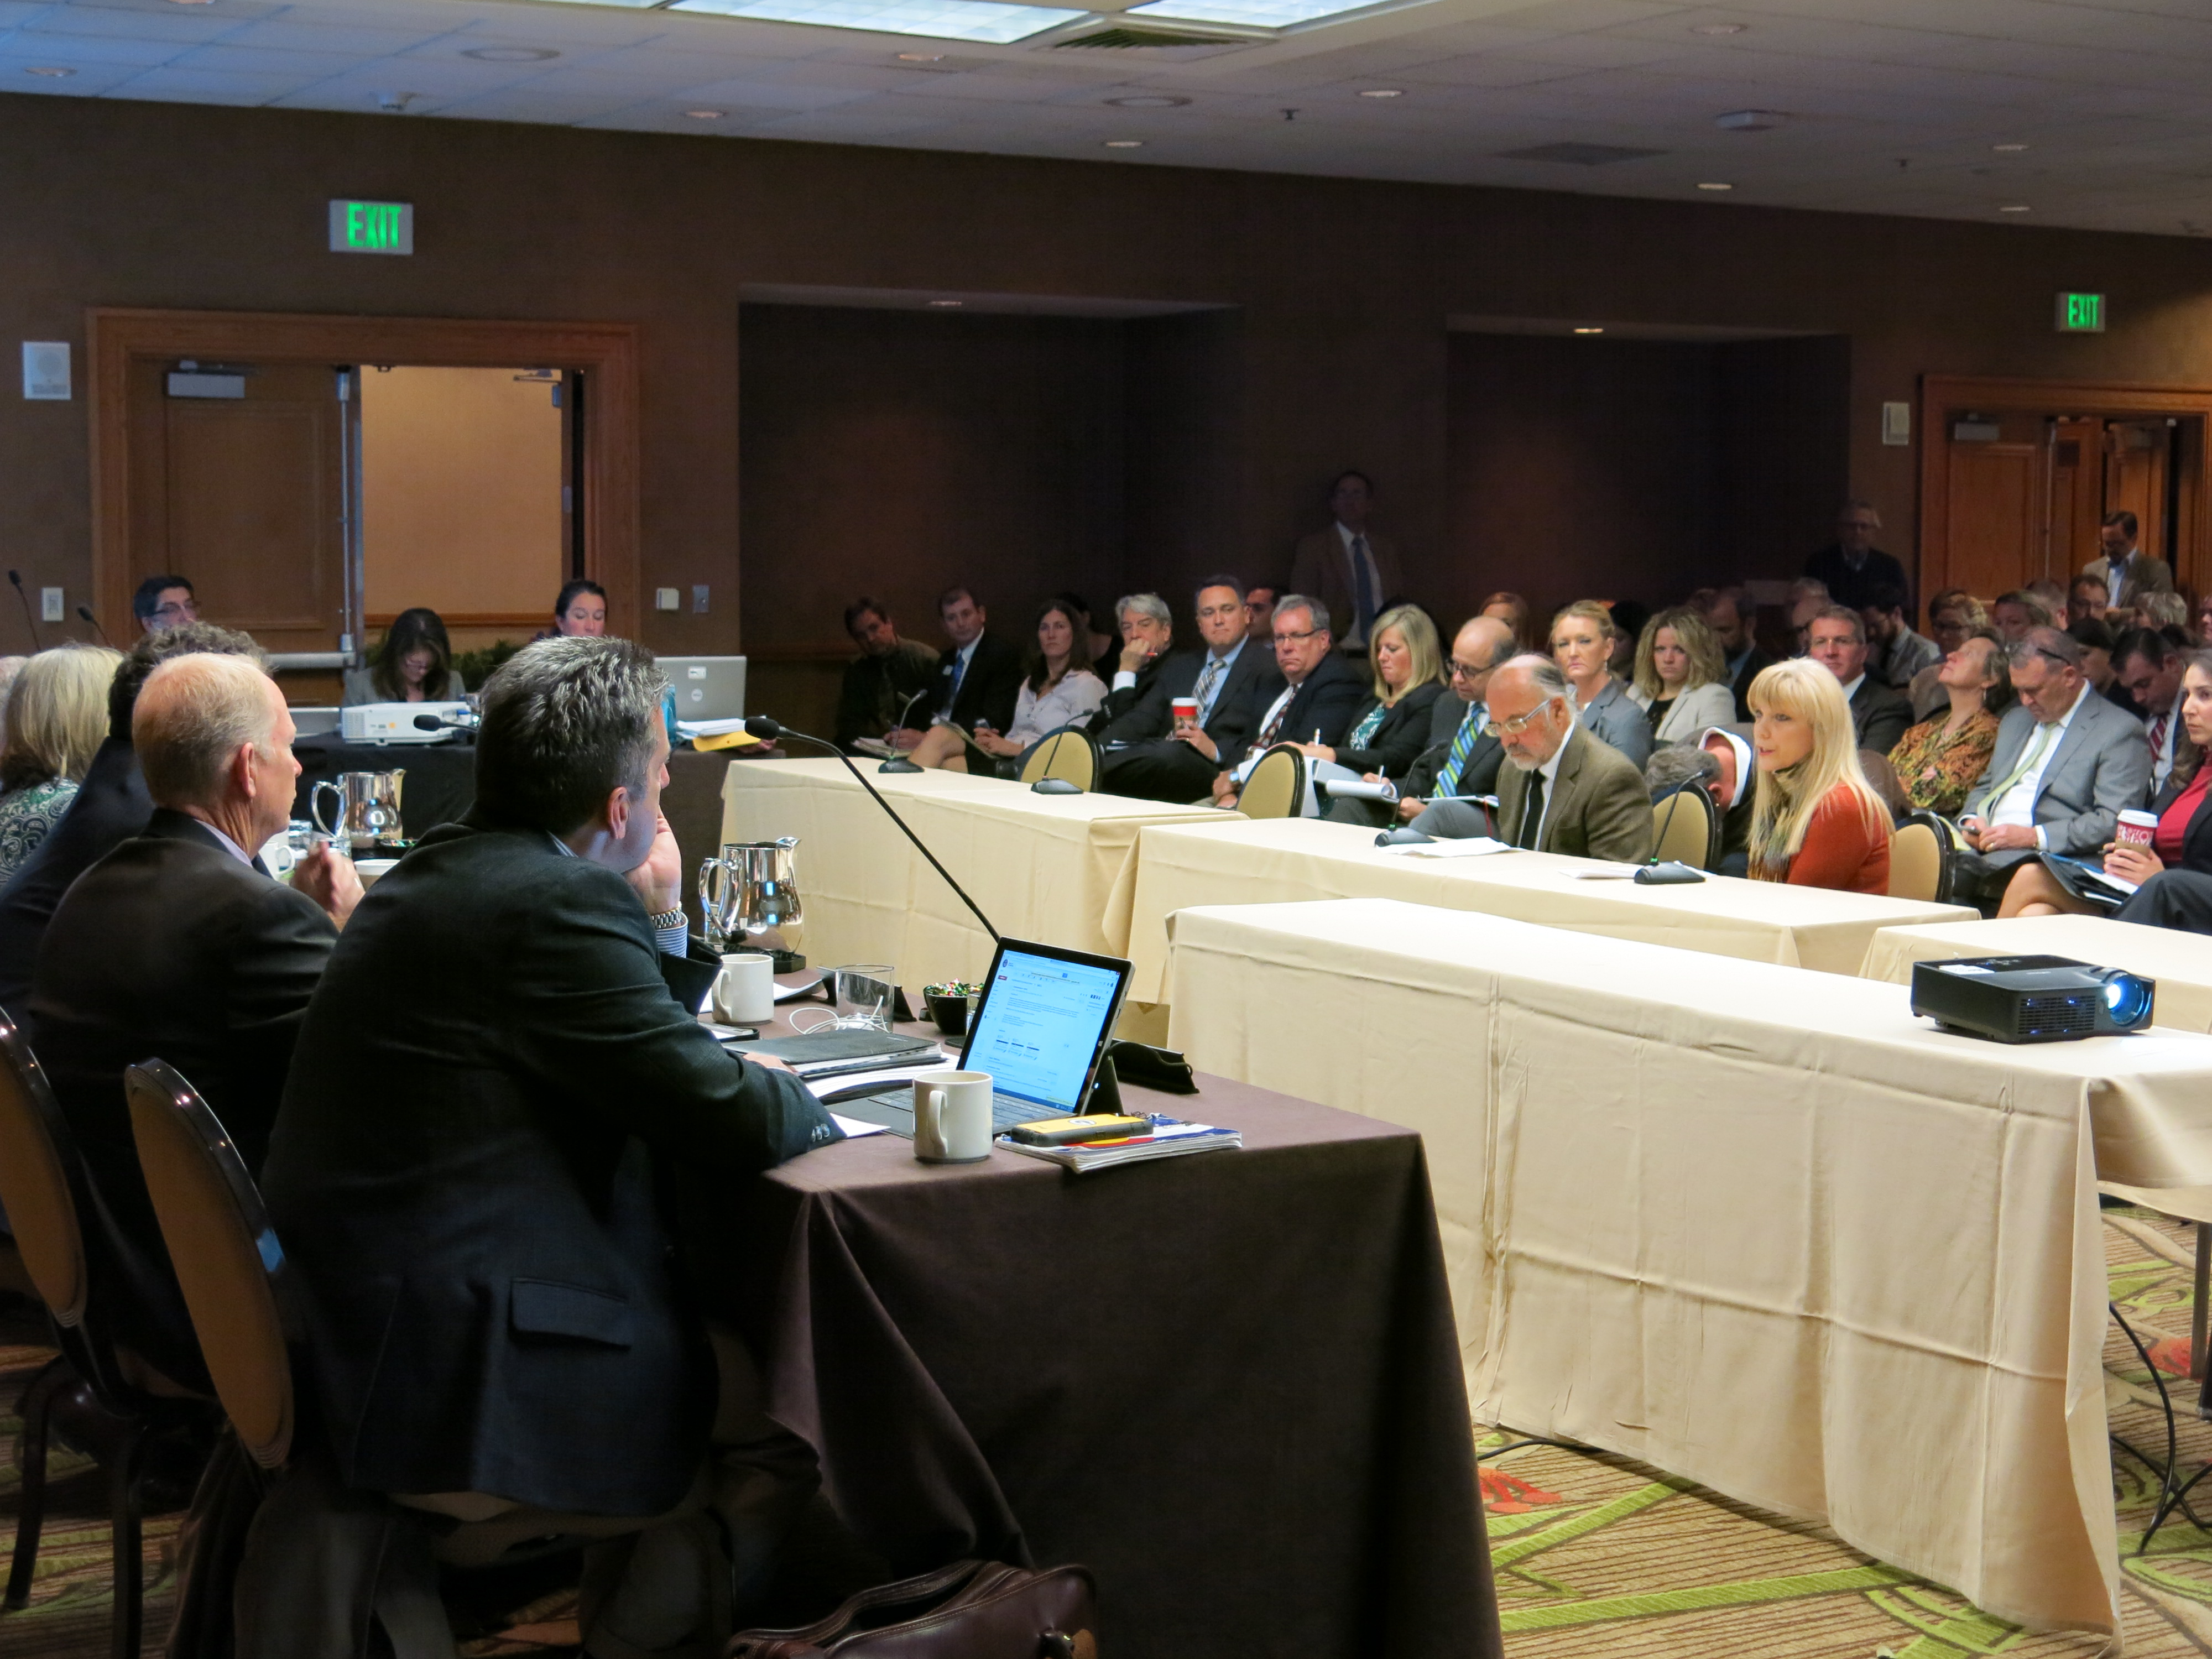 <p>Aoil and gas task force public hearing was held in Denver on Monday, Nov. 16, 2015.</p>